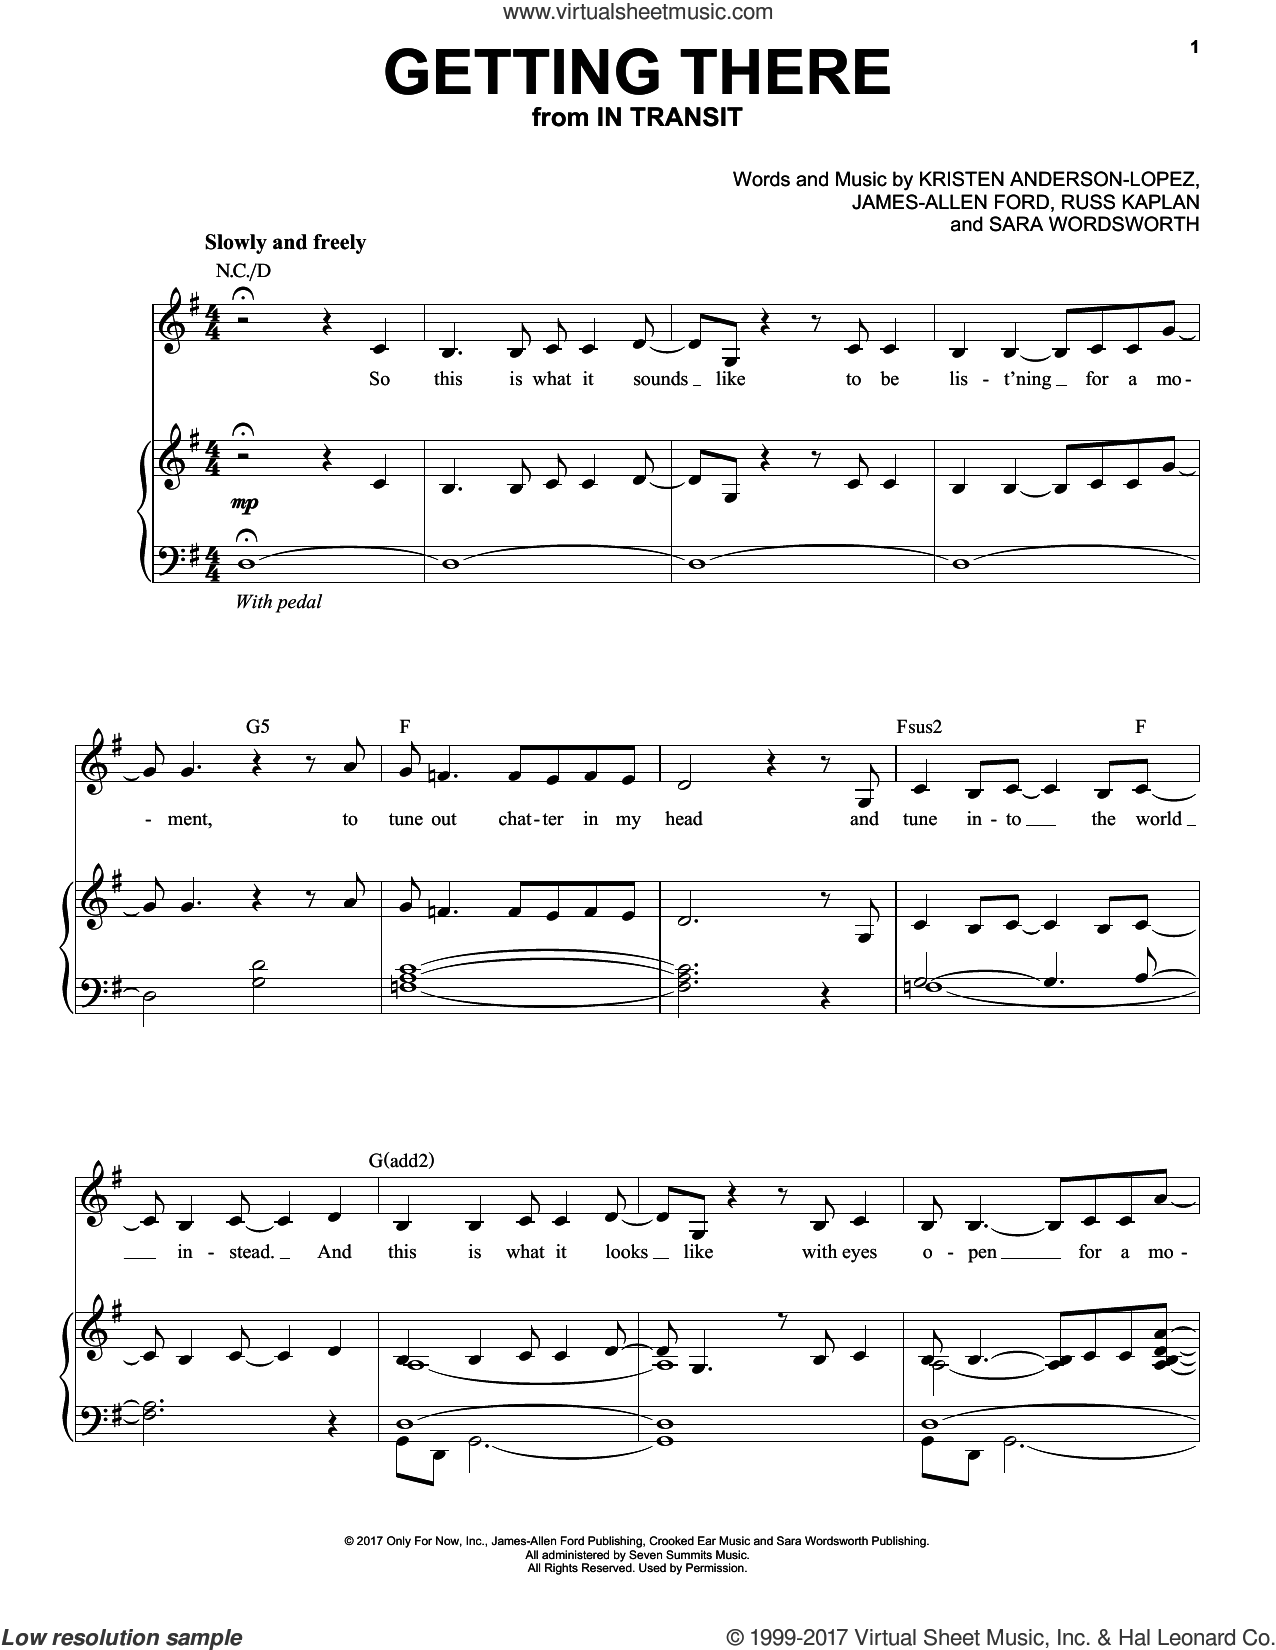 Getting There sheet music for voice, piano or guitar by Kristen Anderson-Lopez, James-Allen Ford, Russ Kaplan and Sara Wordsworth, intermediate skill level